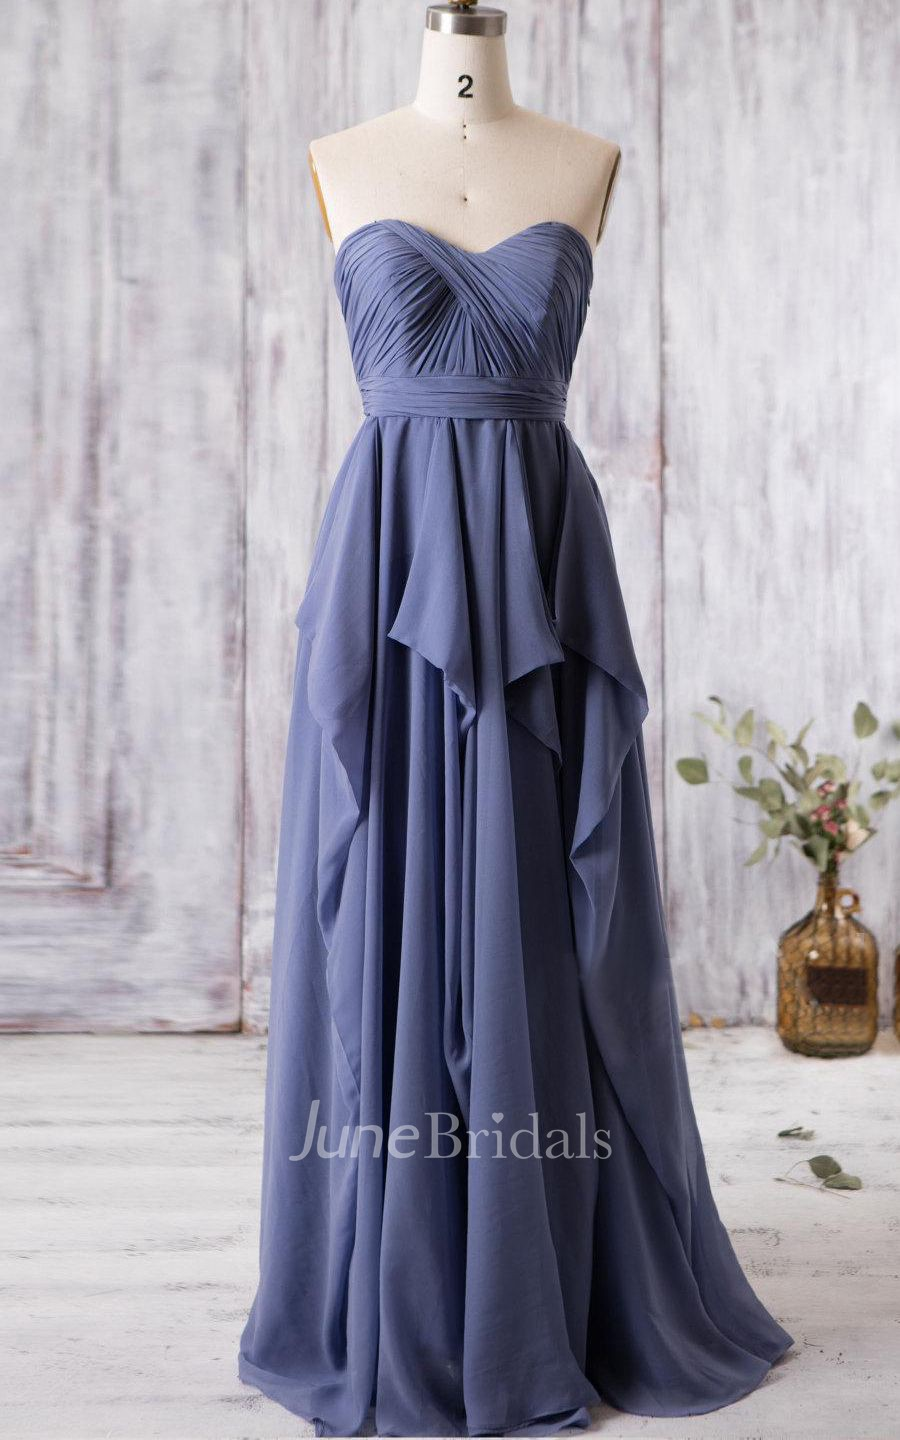 f0a8f71c61c1 Sweetheart Empire Pleated A-line Chiffon Long Dress With Ruffles and  Keyhole - June Bridals